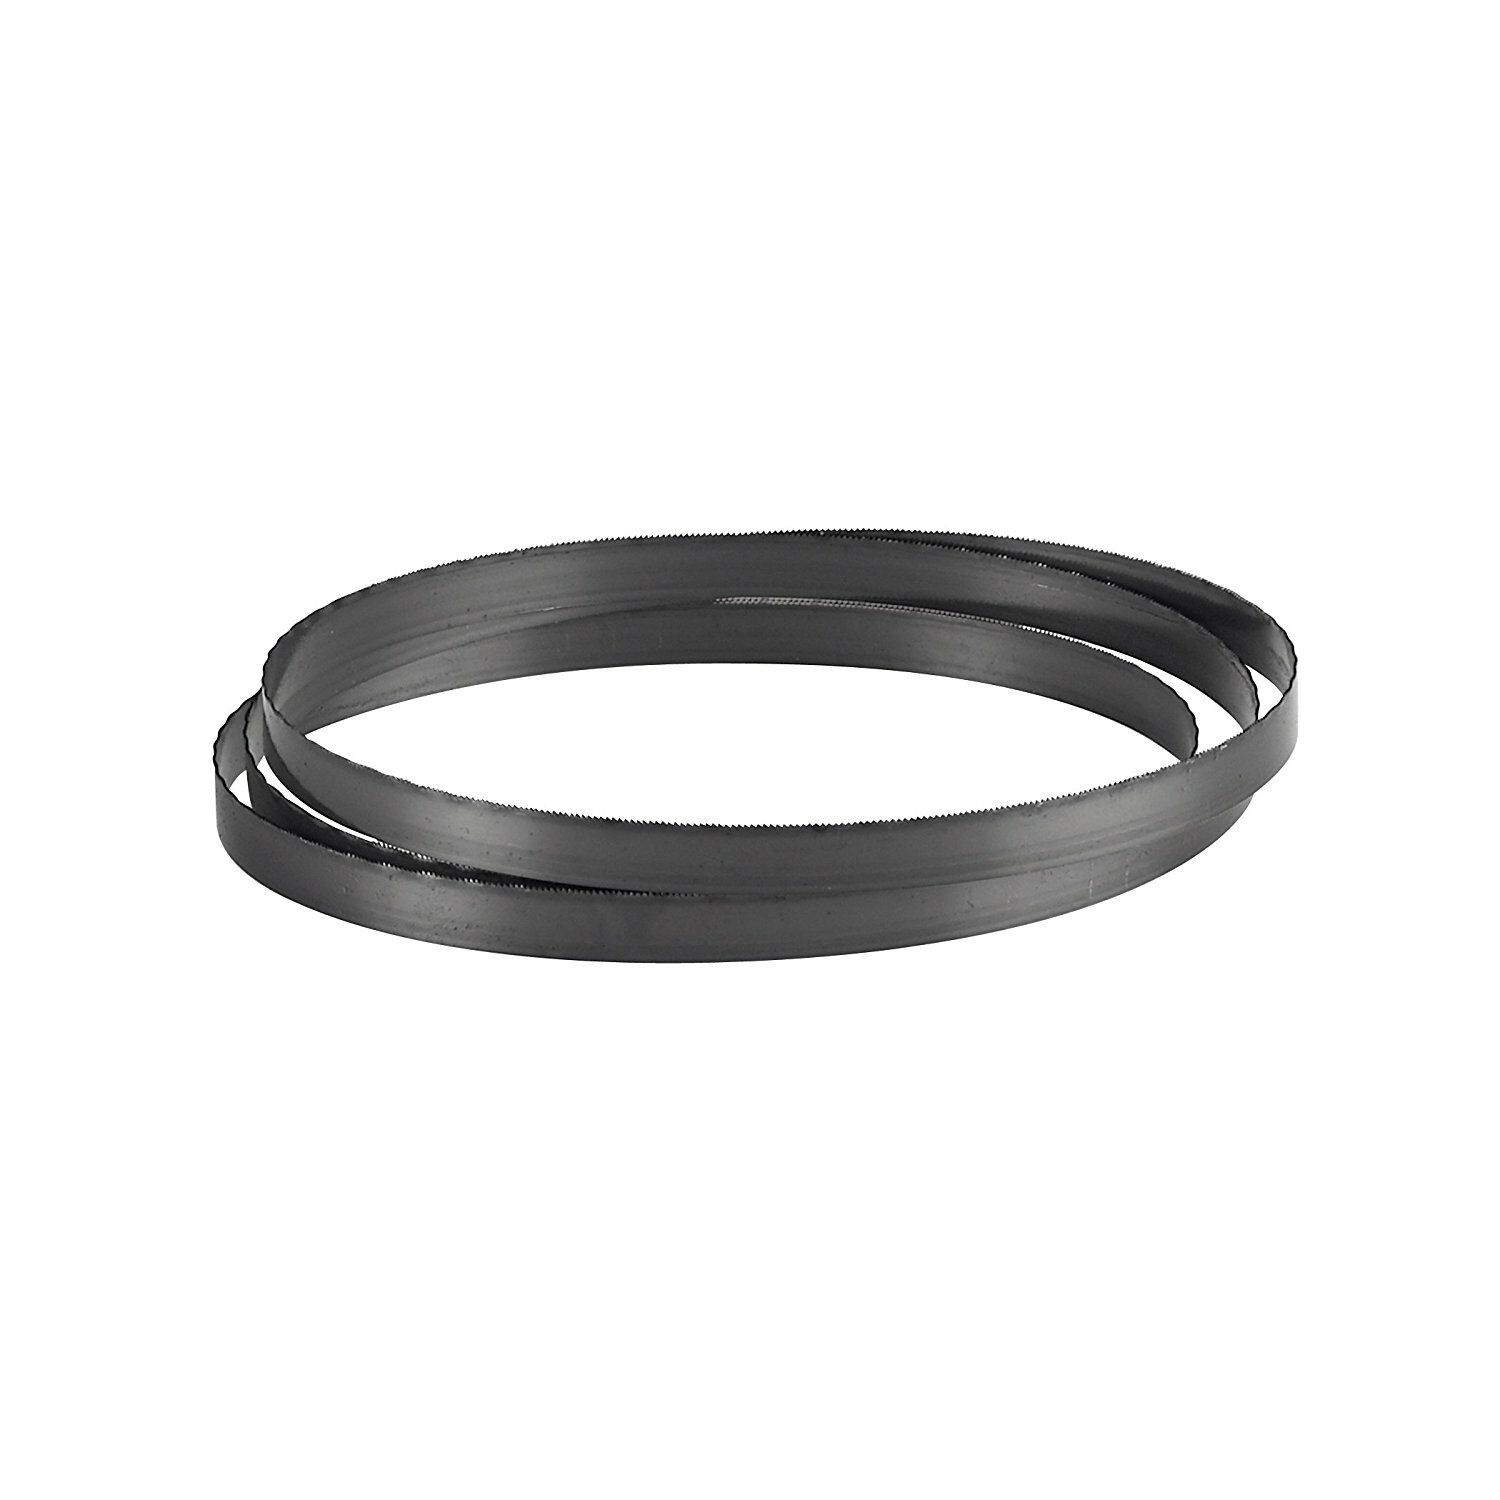 Bosch BS6412-24M 64-1/2-Inch by 1/2-Inch by 24TPI Metal Band